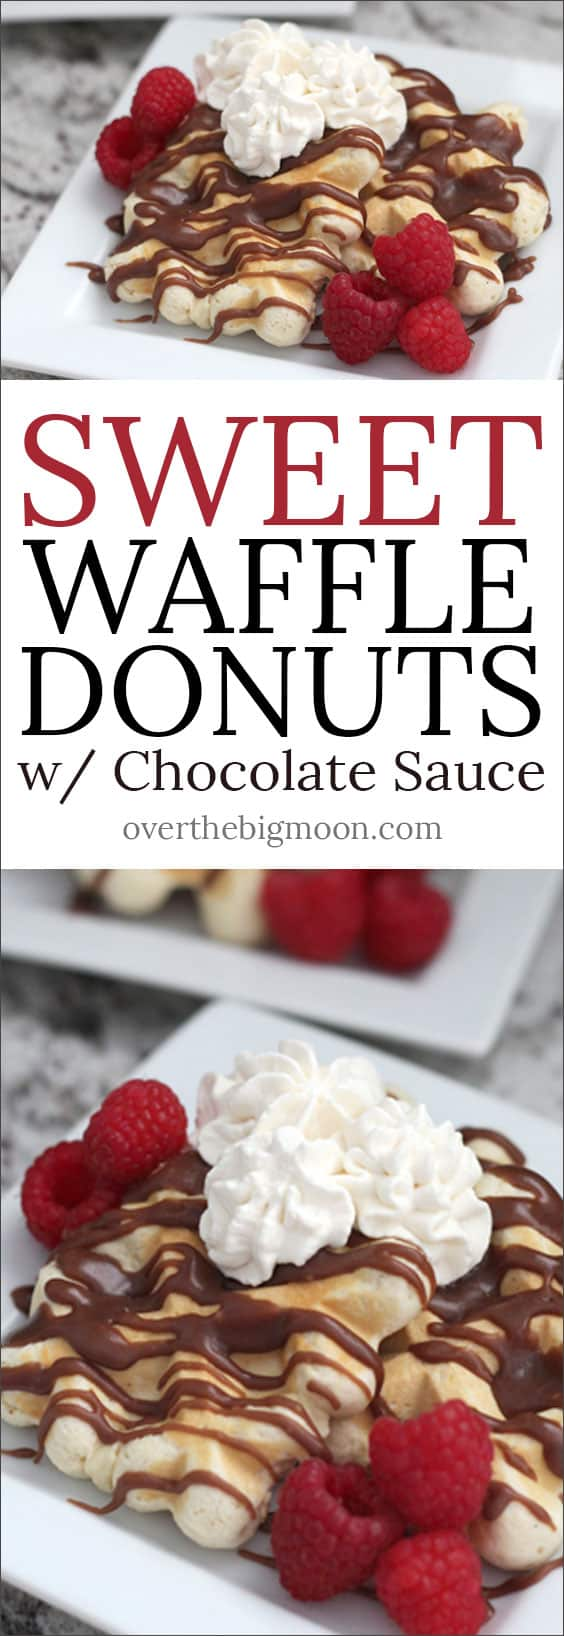 Sweet Waffle Donut w/ Chocolate Sauce - such a yummy breakfast that is basically impossible to mess up!! My whole family loves it!